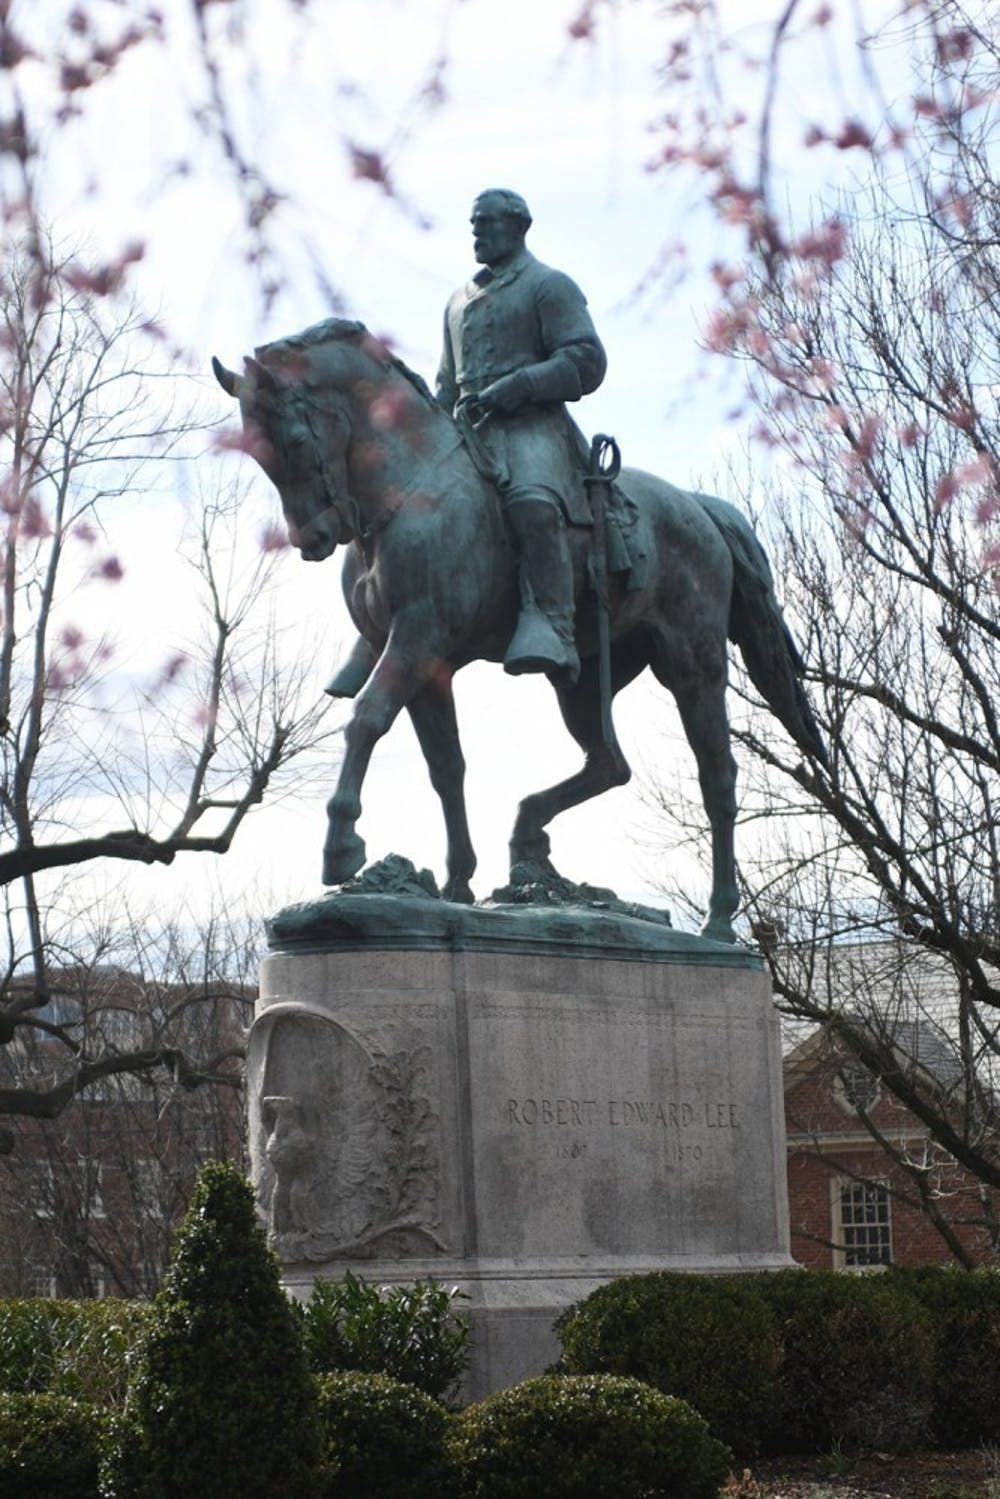 <p>The statue of Confederate General Robert E. Lee in downtown Charlottesville was the center of the violence that erupted in August 2017.</p>